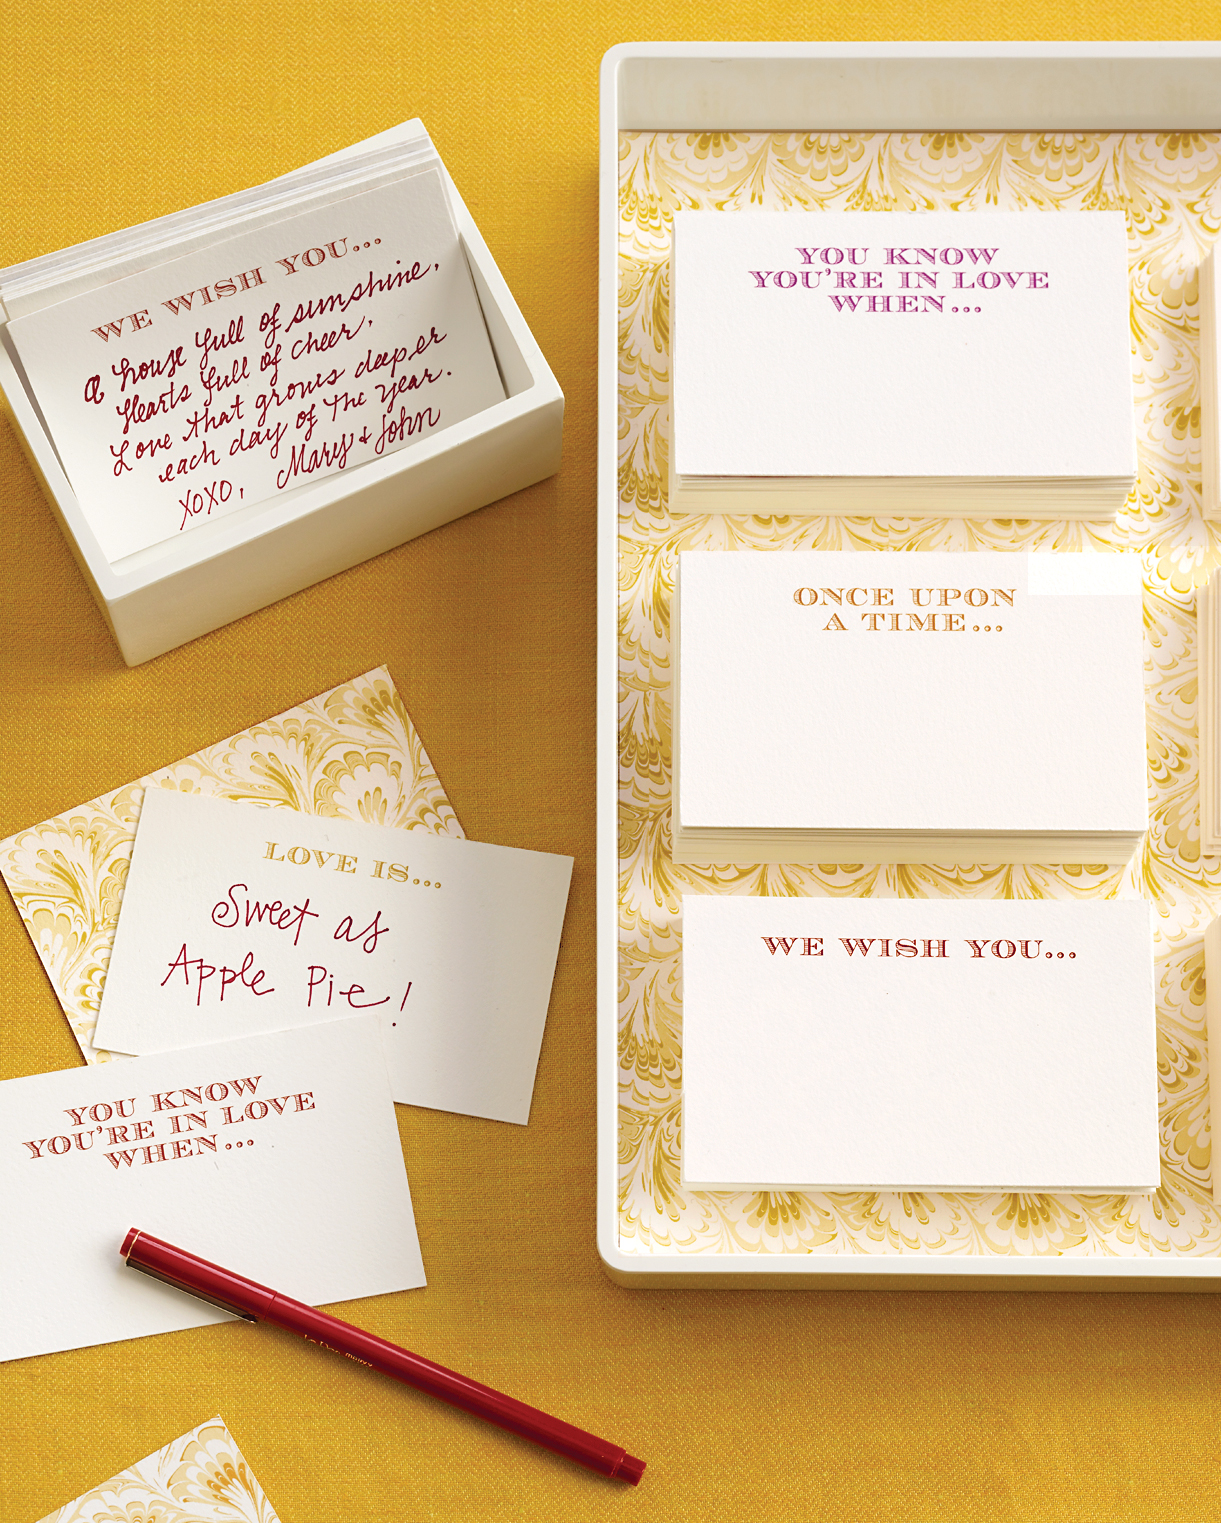 Wedding Website Url Ideas: DIY Wedding Guest Book Ideas